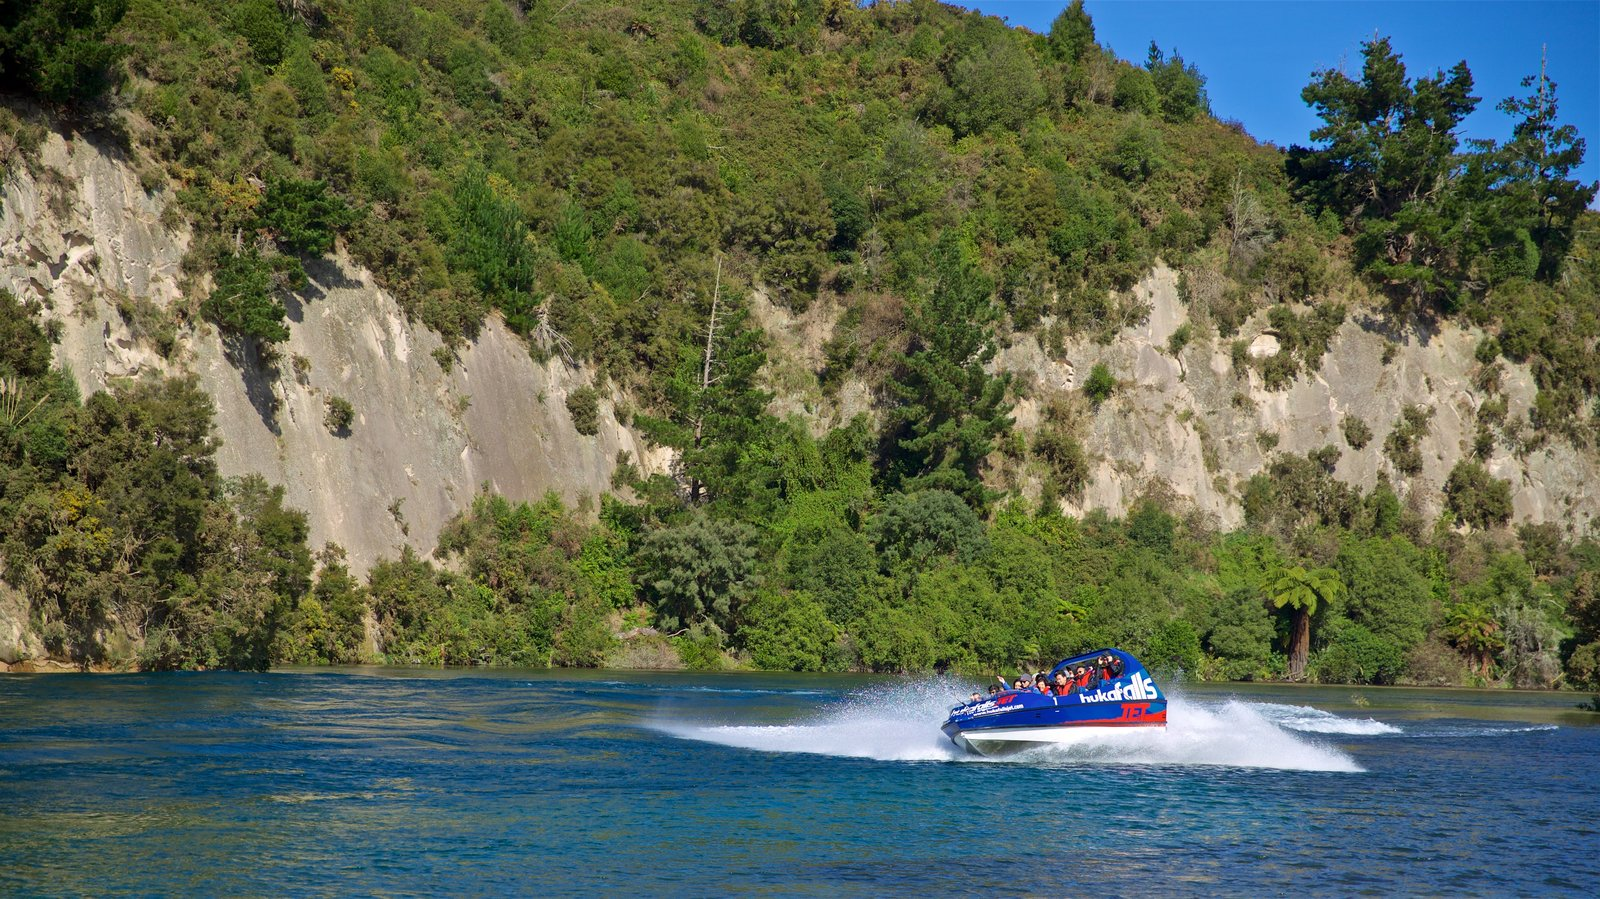 Taupo featuring boating and general coastal views